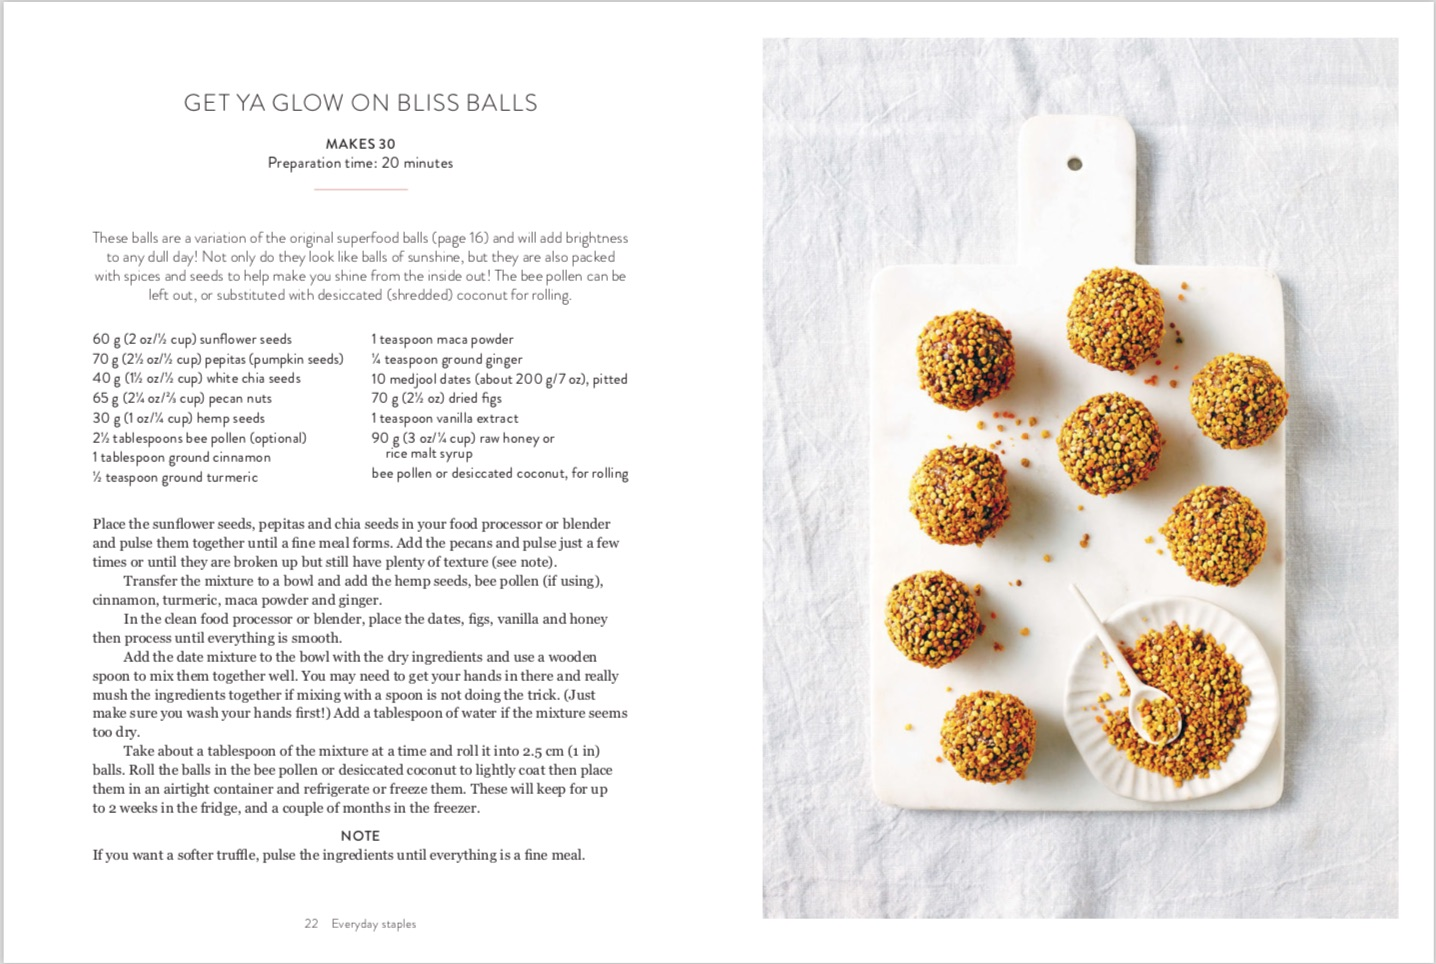 By Kate Bradley from Bliss Bites: Vegan, Gluten and Dairy-Free Treats from the Kenko Kitchen copyright Hardie Grant Books 2017